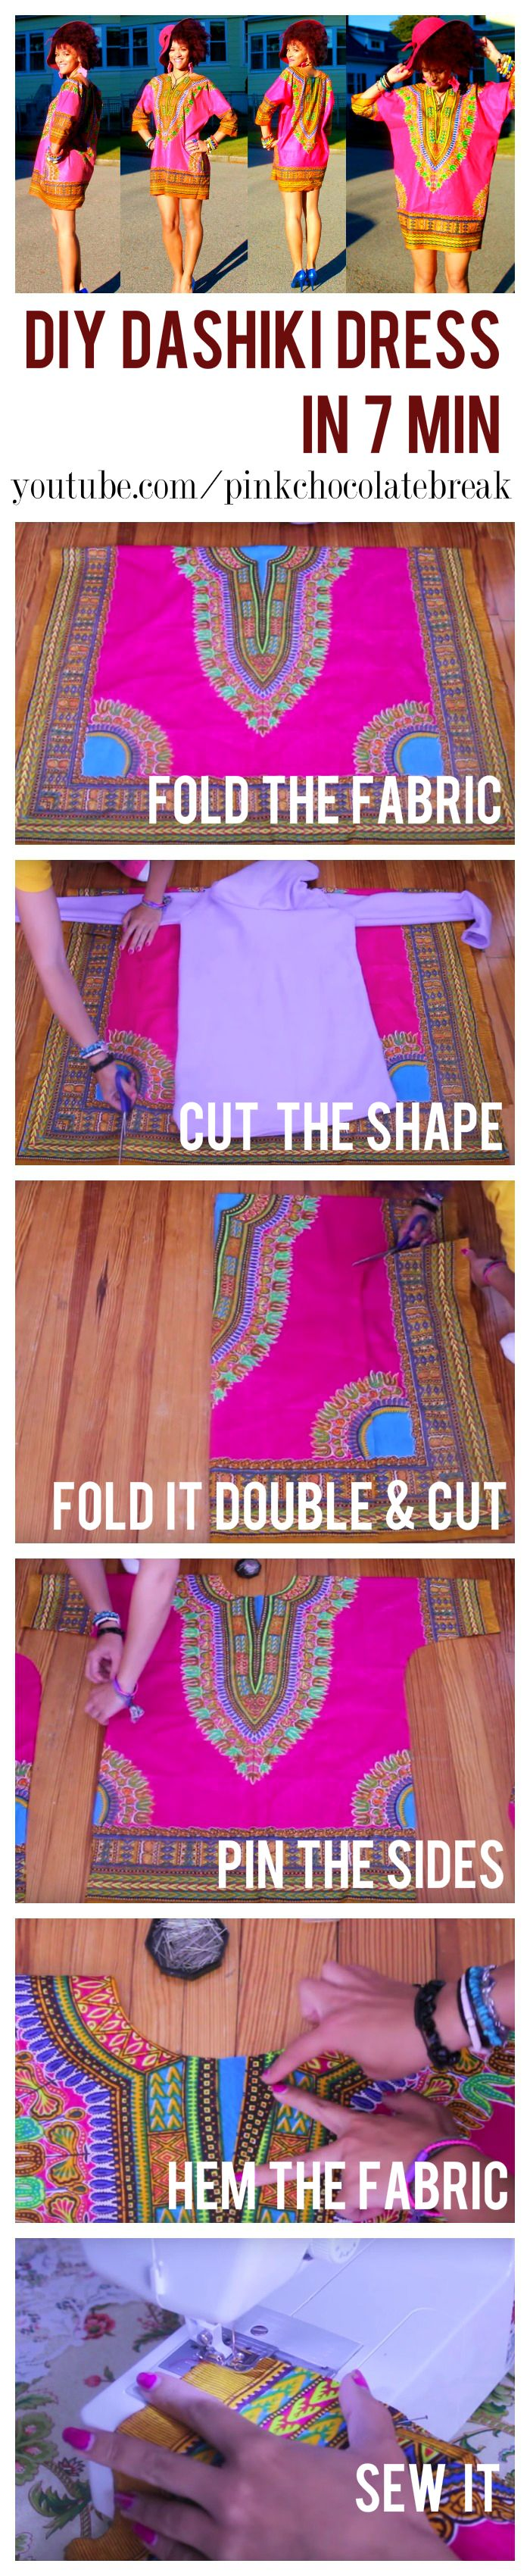 Learn how to make a DIY dashiki step by step in 7 min.  Watch the full tutorial here https://www.youtube.com/watch?v=HvXXwstgvNs #sewing #diyclothes #dashiki